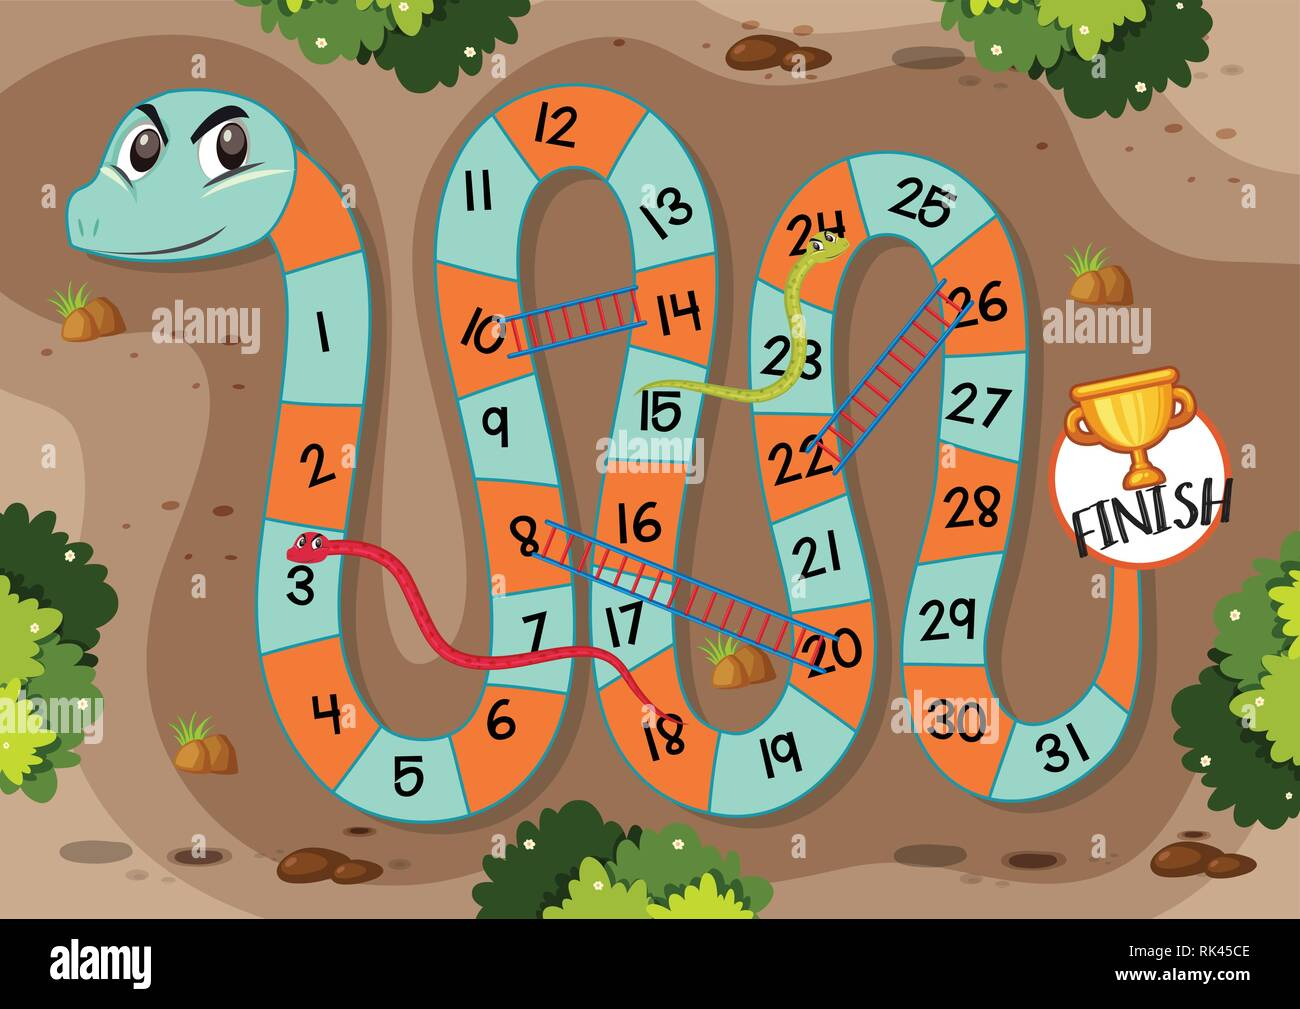 Snakes And Ladders Free Vector Art - (32 Free Downloads)